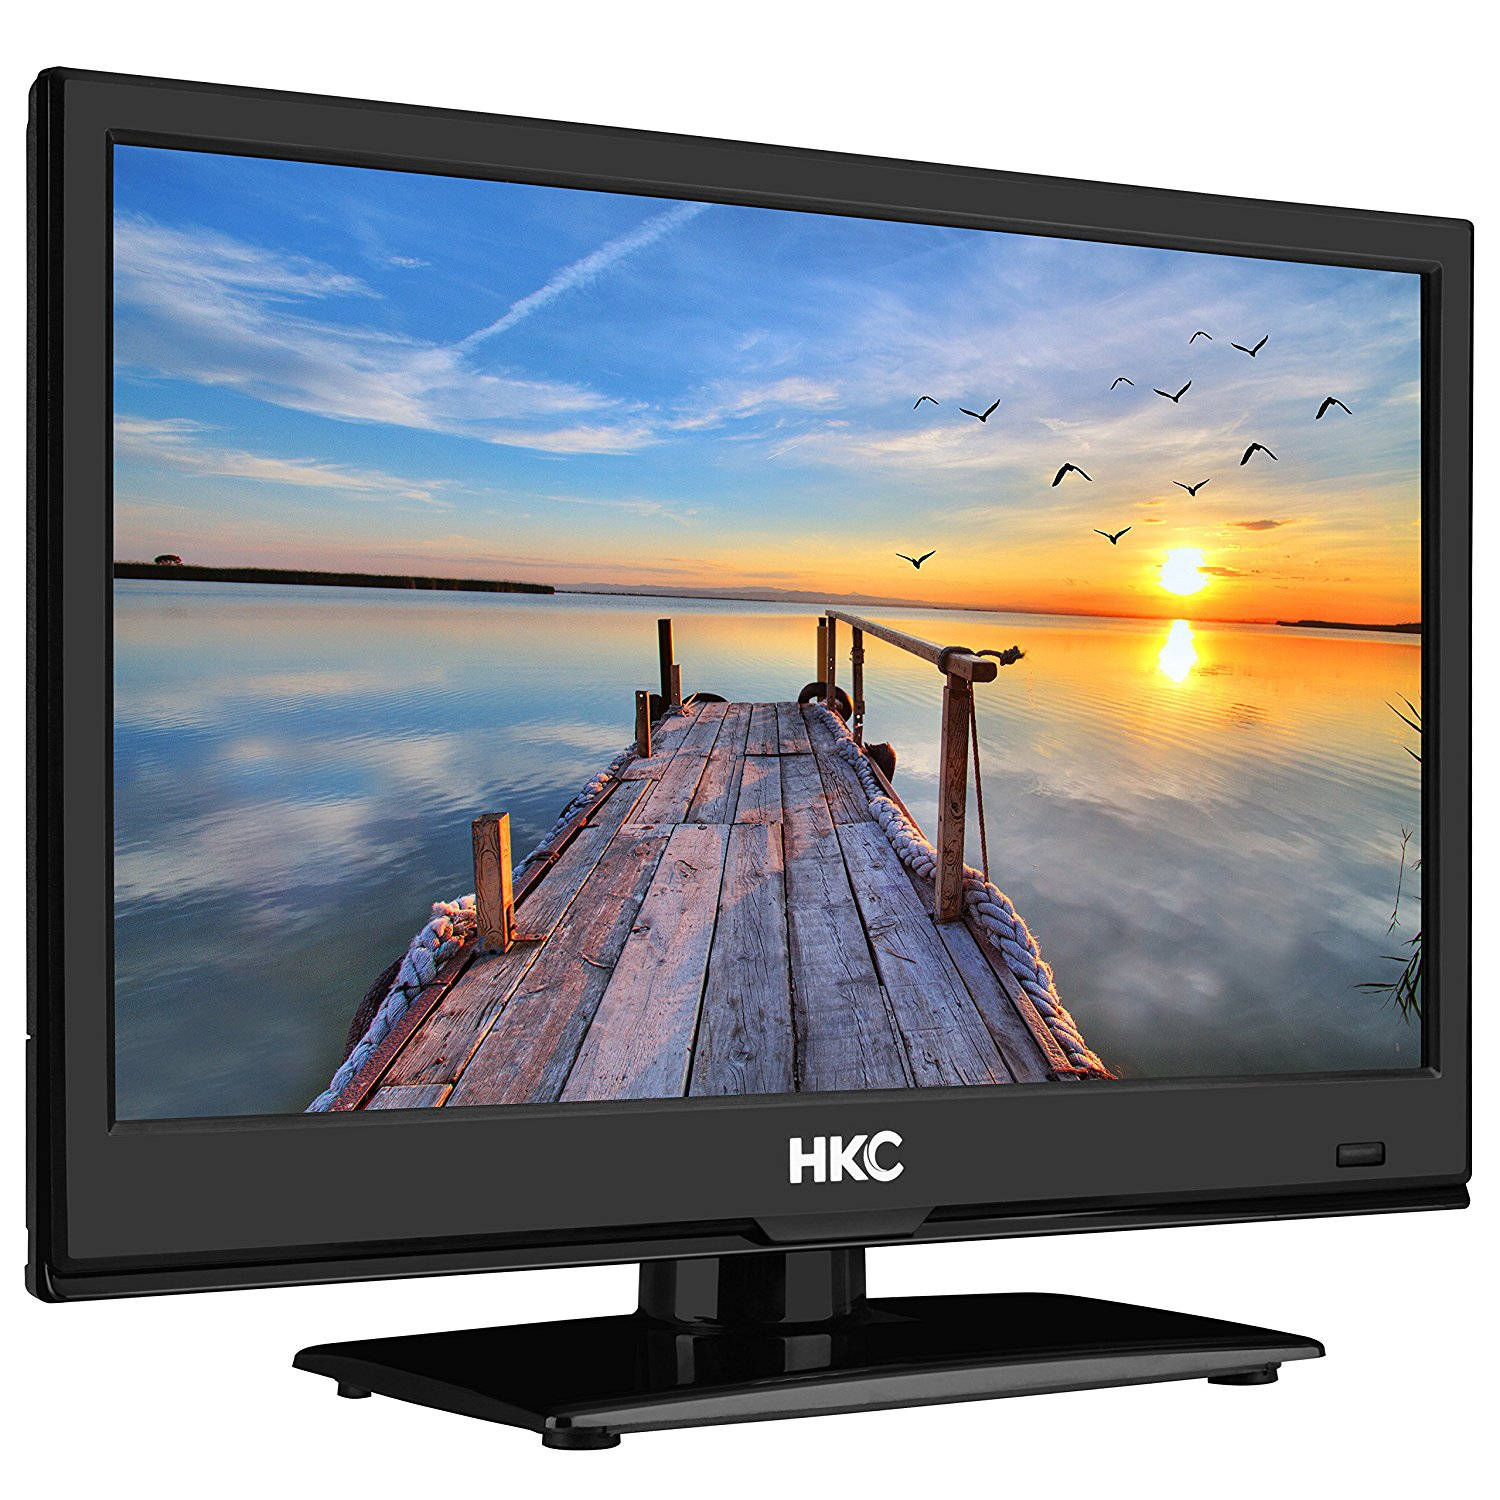 HKC 16M4C 15,6 inch Full HD TV